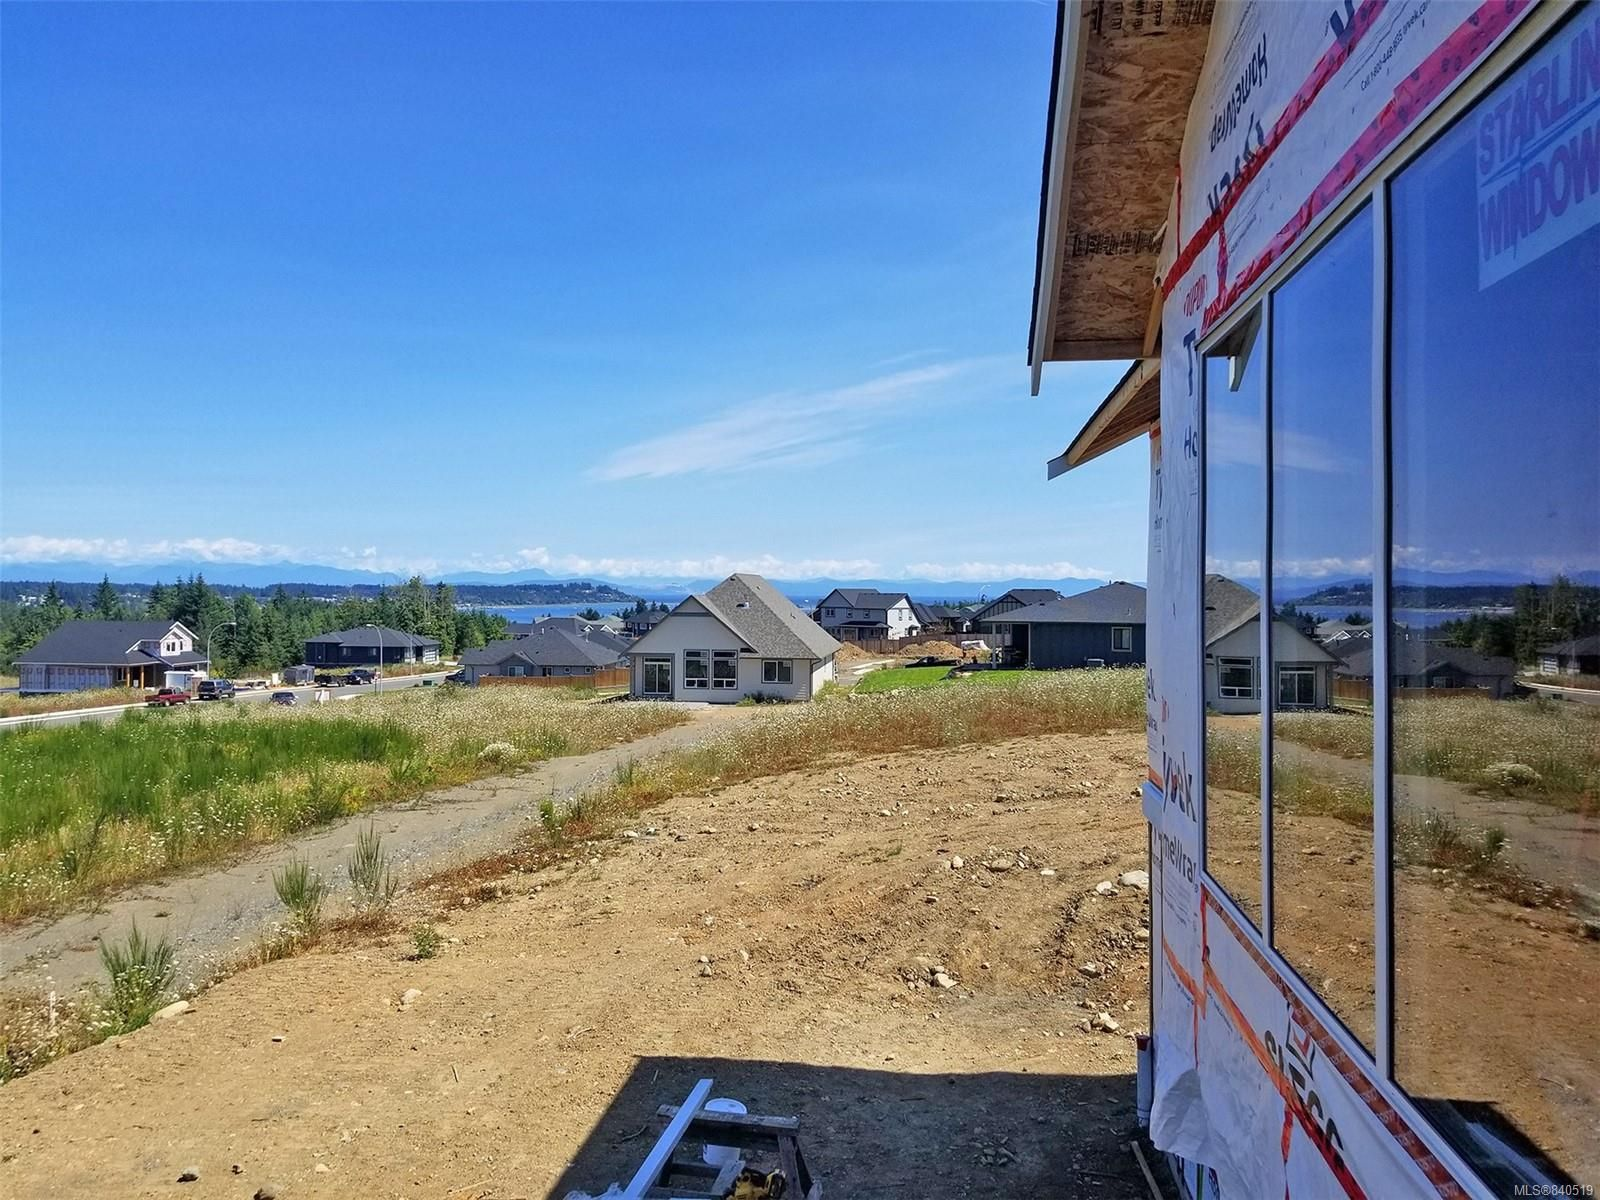 Photo 6: Photos: 3332 Harbourview Blvd in COURTENAY: CV Courtenay City House for sale (Comox Valley)  : MLS®# 840519